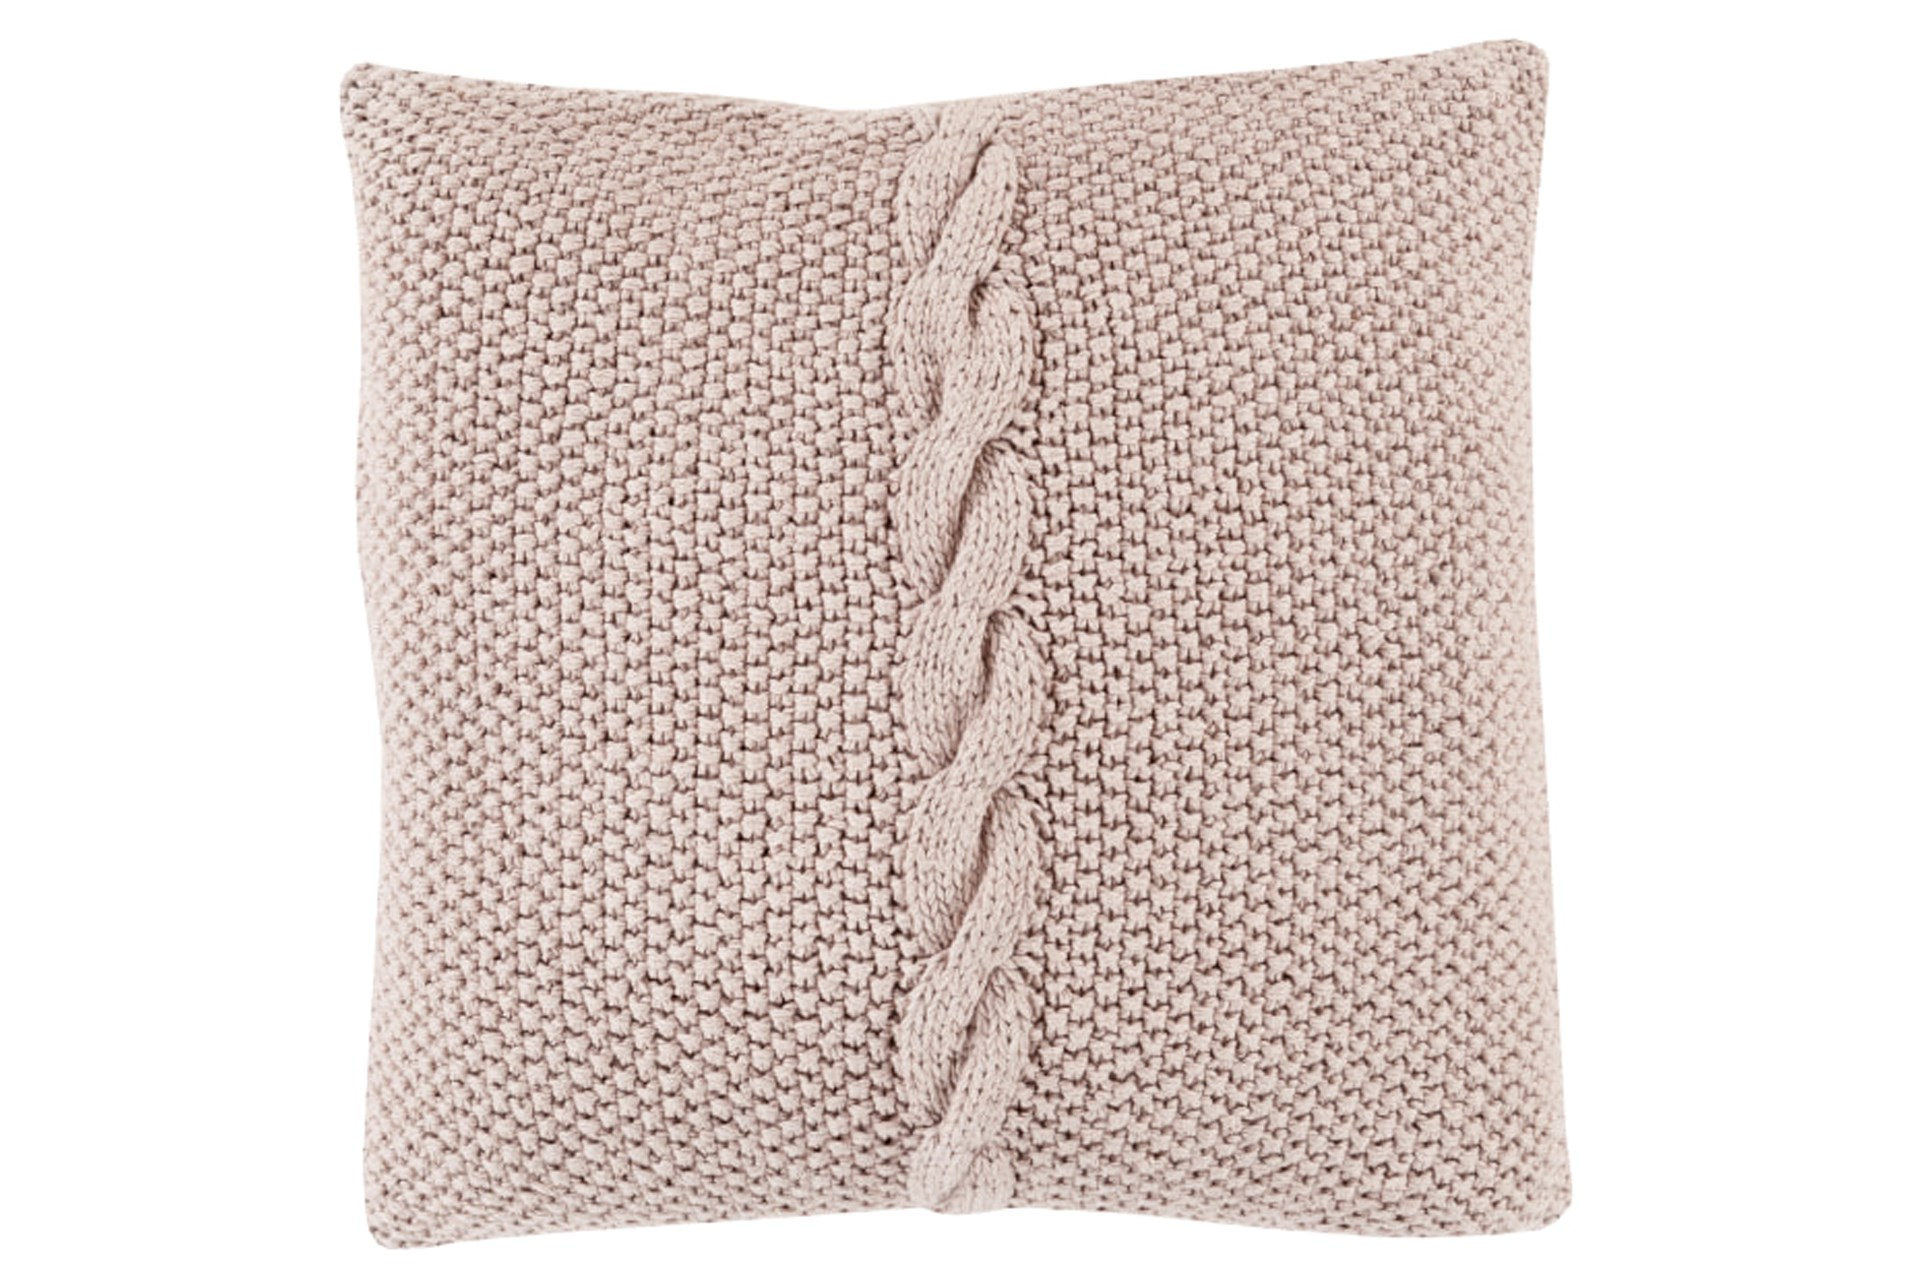 Decorative Pillows Living Spaces : Accent Pillow-Serenity Taupe 18X18 Living Spaces